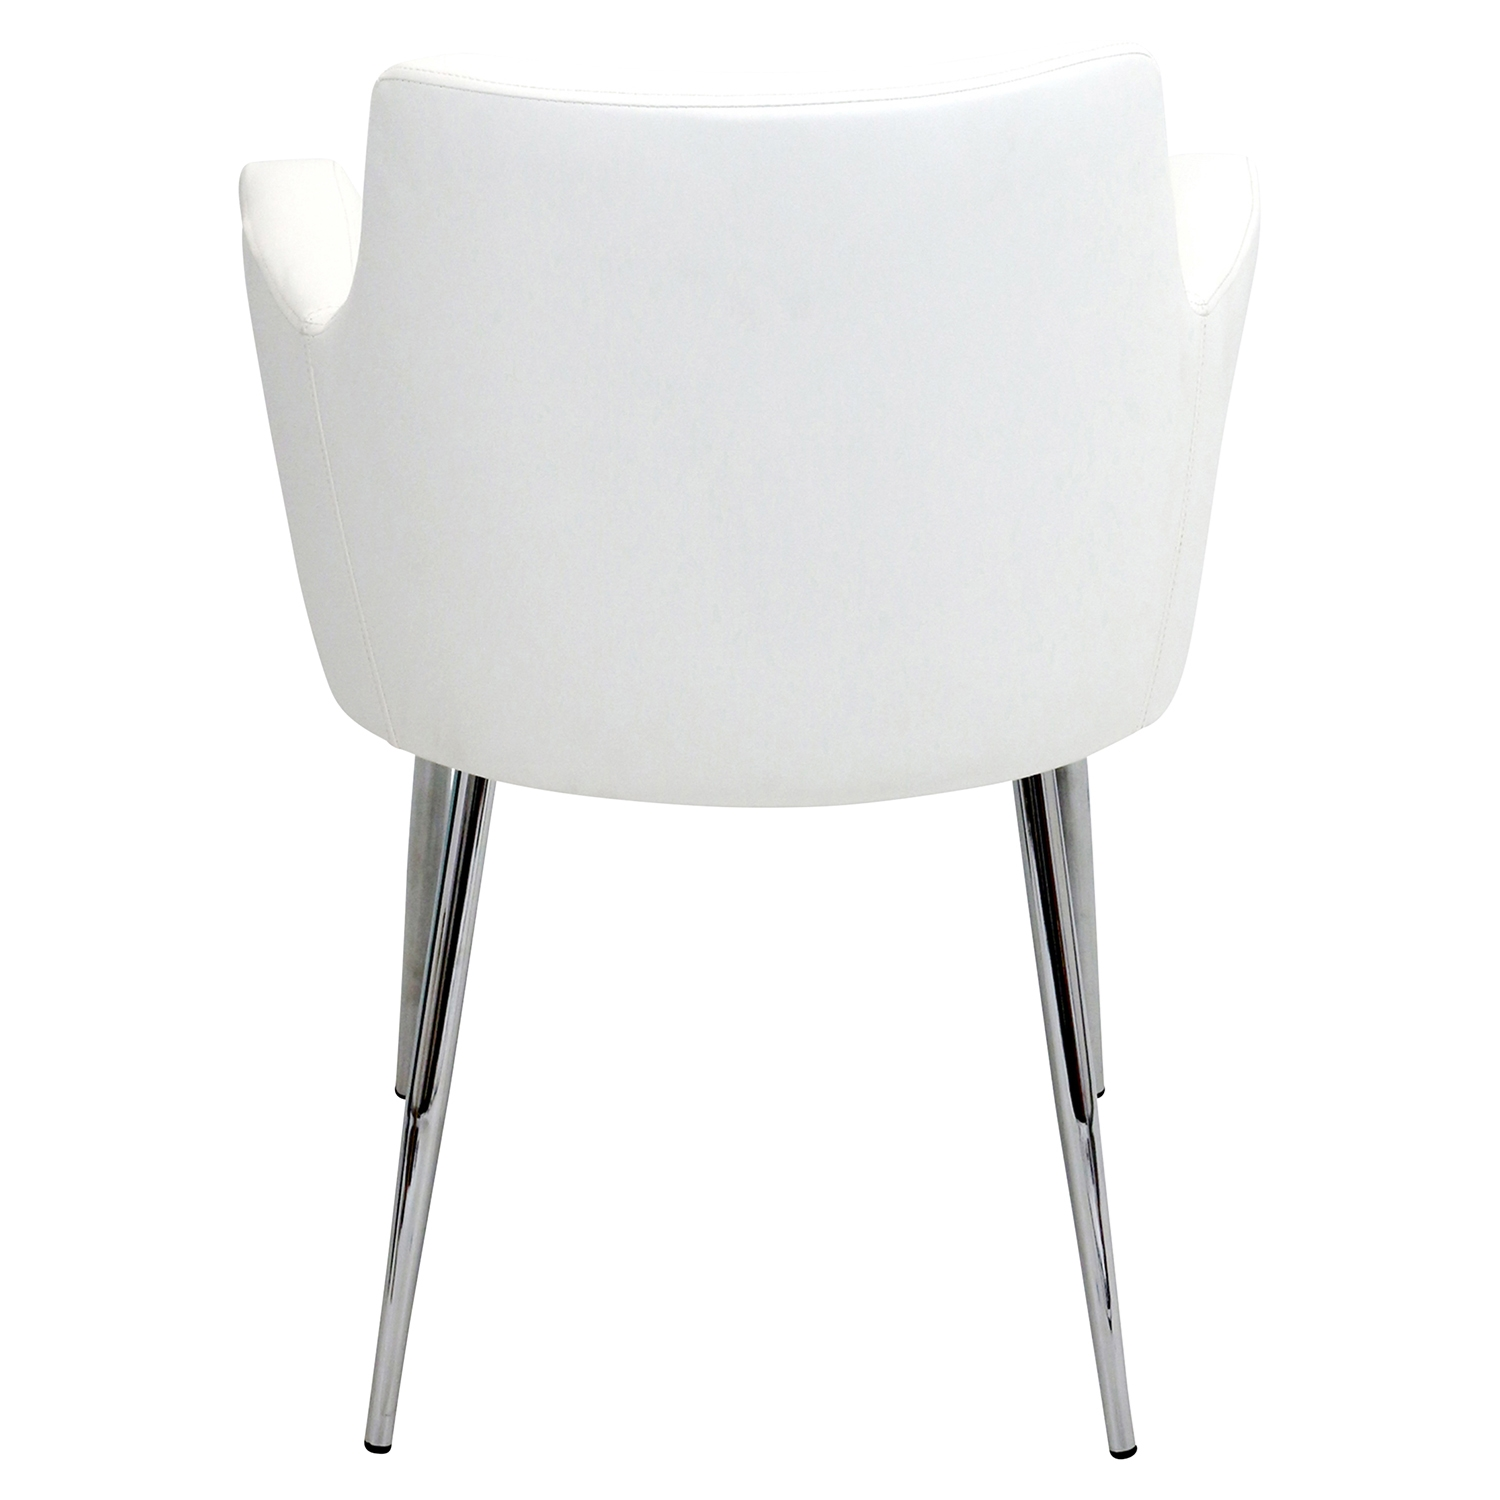 Andrew Dining Chair - White (Set of 2) - LMS-CH-ANDRW-W2